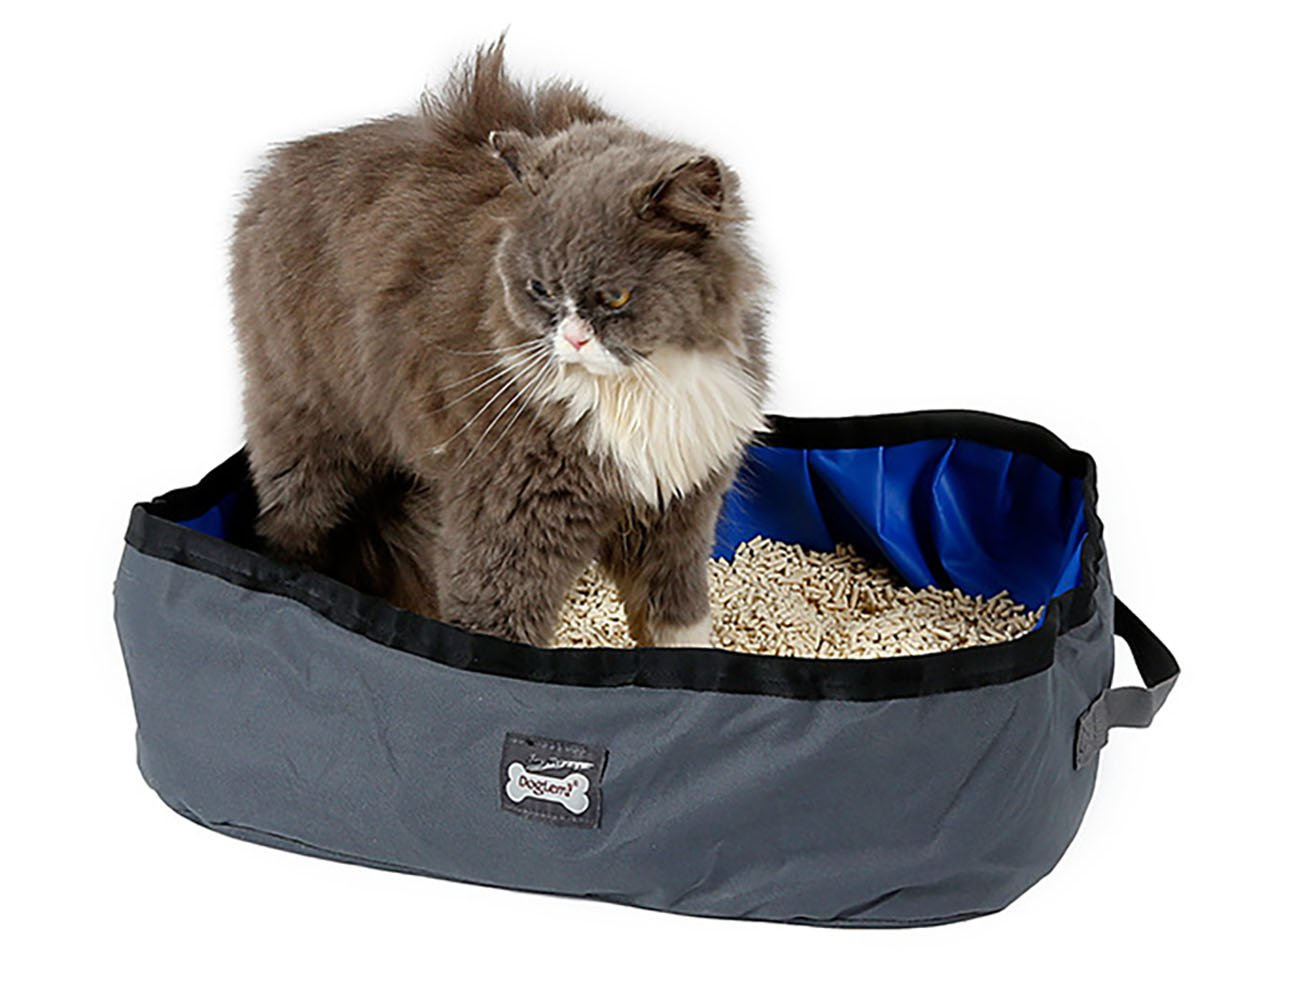 Uheng Cat Litter Box Soft Foldable Waterproof Pet Kitty Cat Litter Pan Portable for Travel Easy to Clean